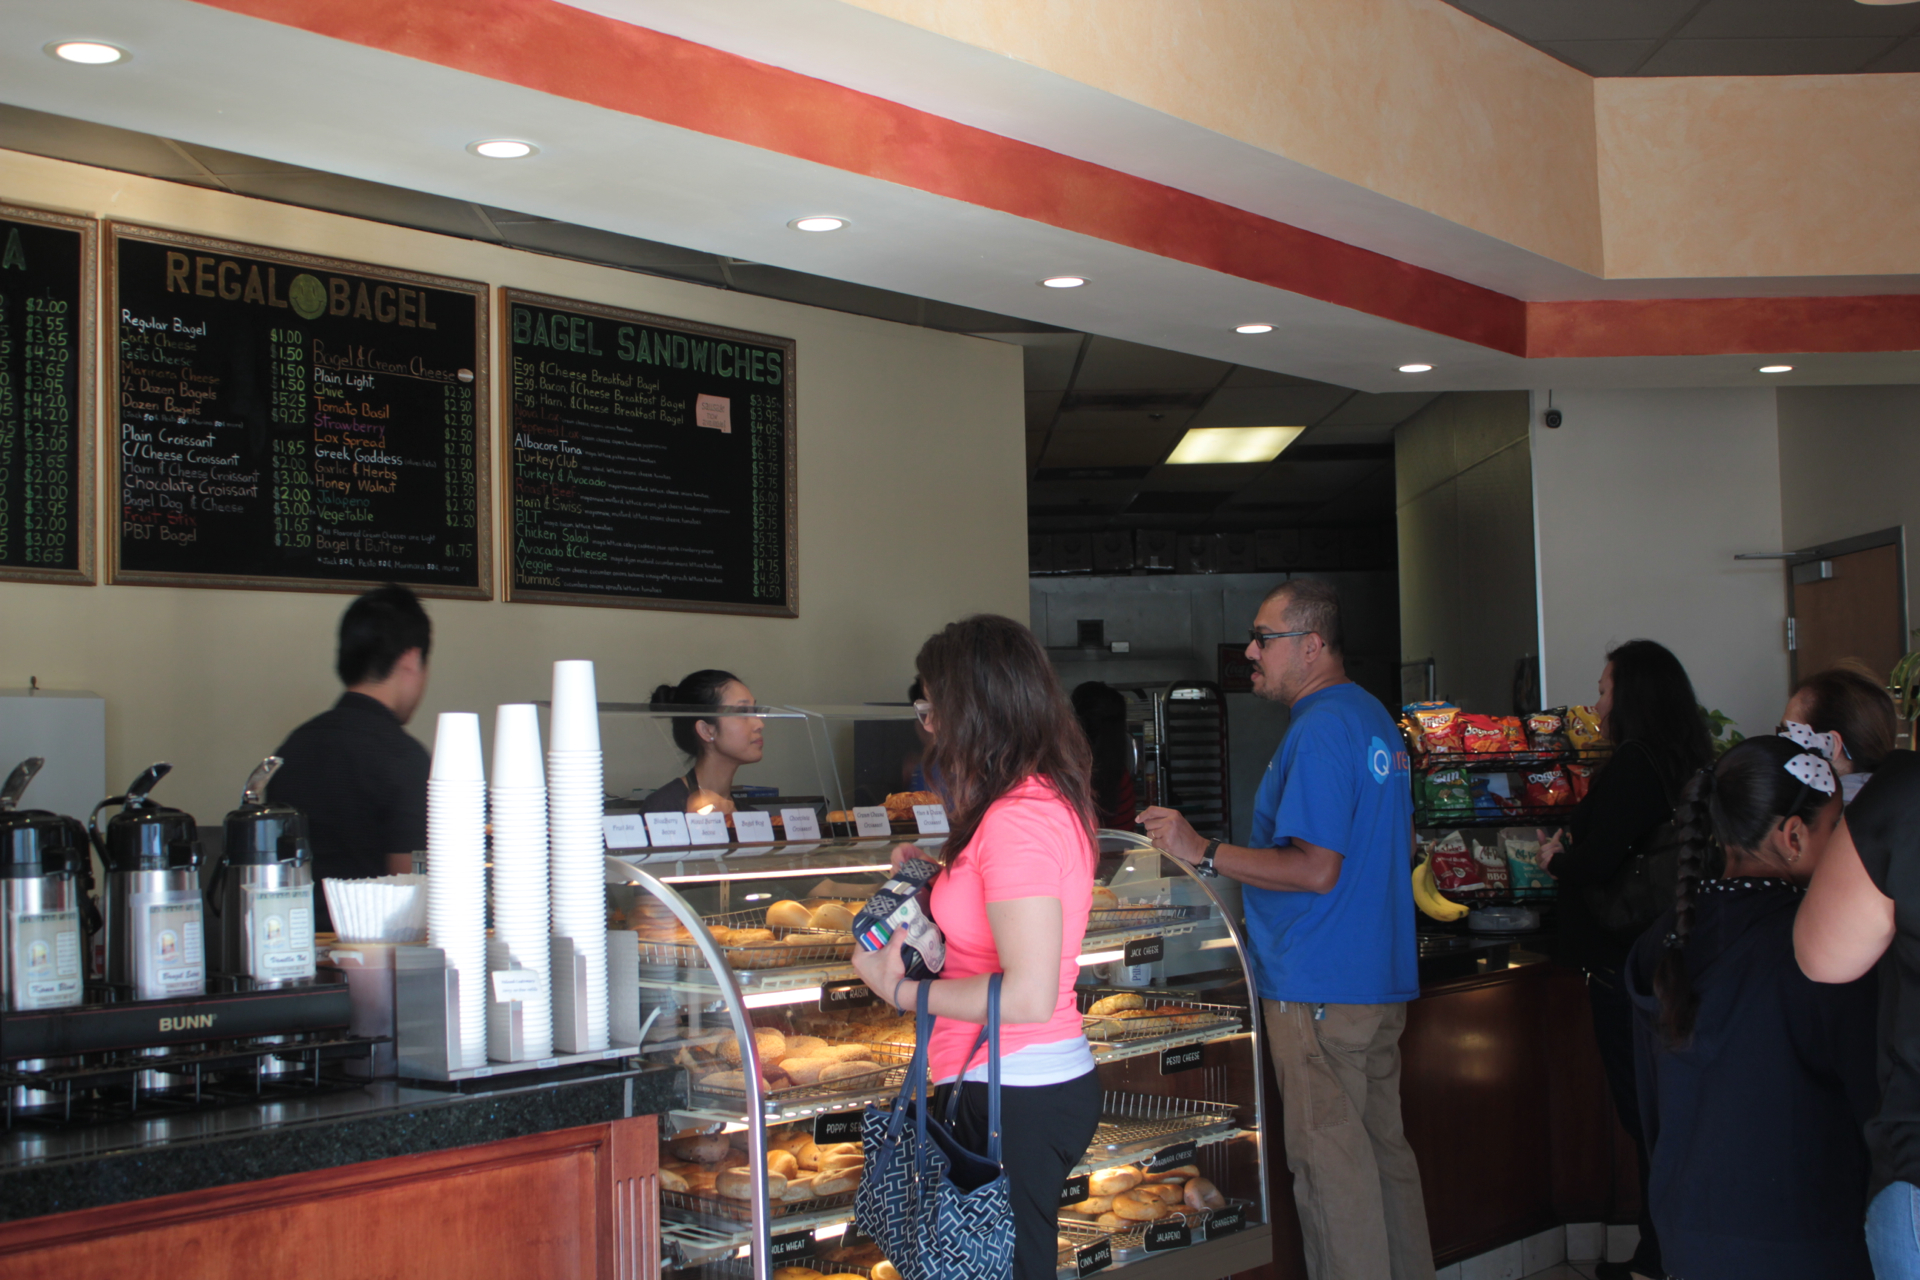 Customers ordering at Regal Bagel in San Jose.